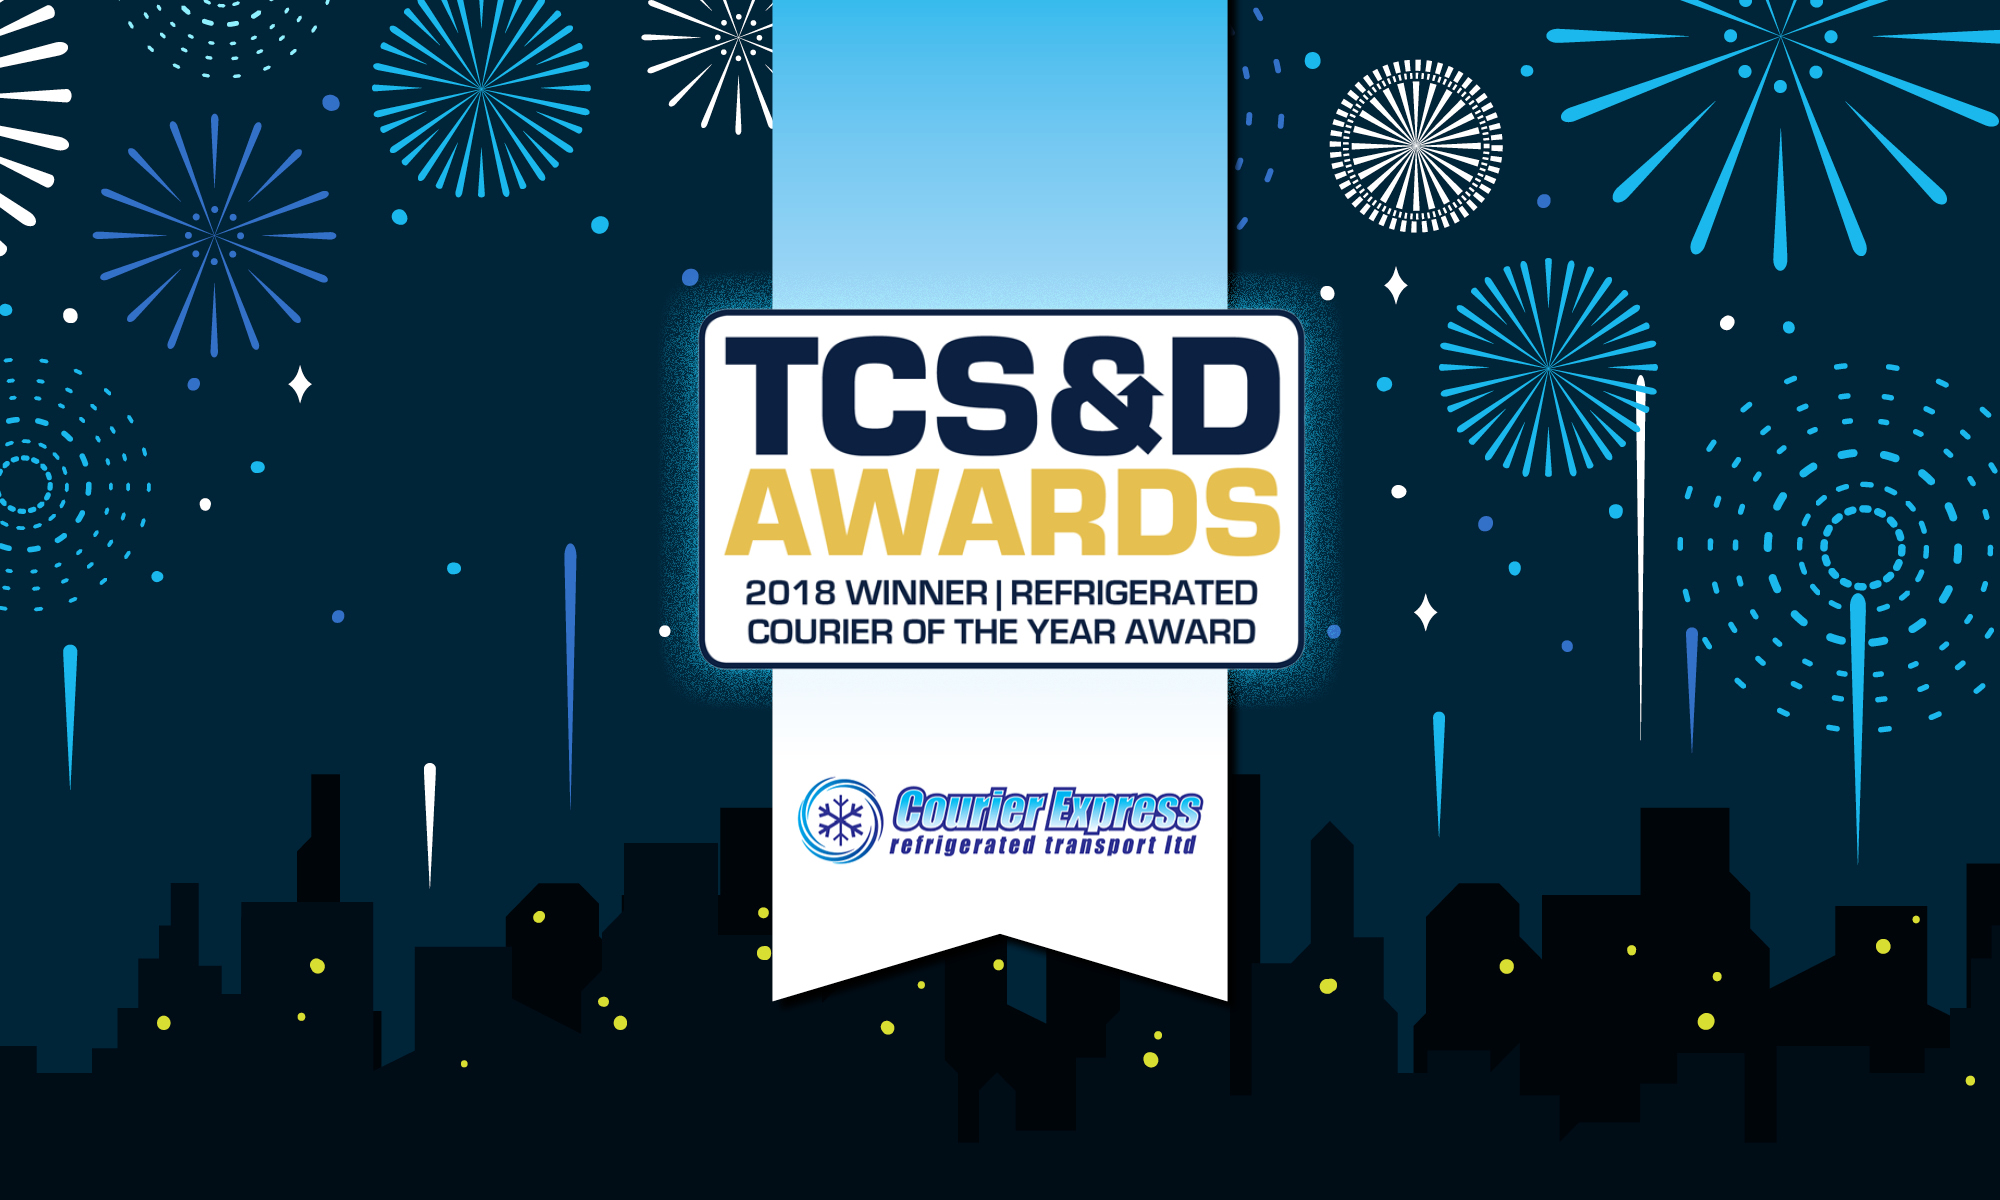 Refrigerated Courier of the Year 2018 - TCS&D Awards